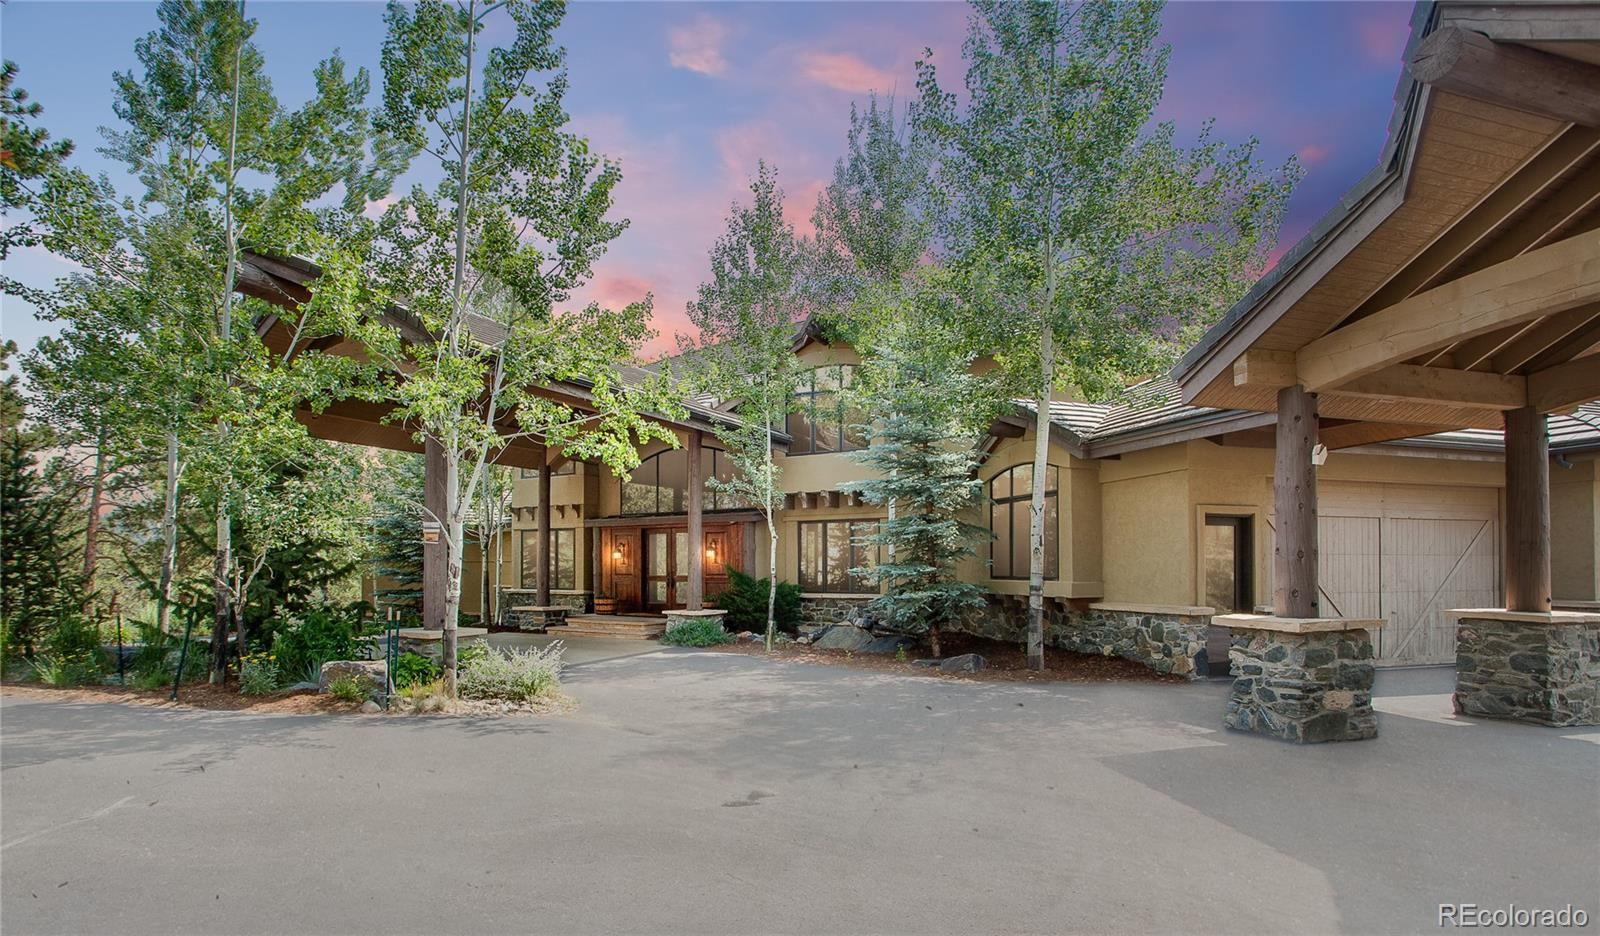 1334 Silver Rock Lane, Evergreen, CO 80439 - Evergreen, CO real estate listing